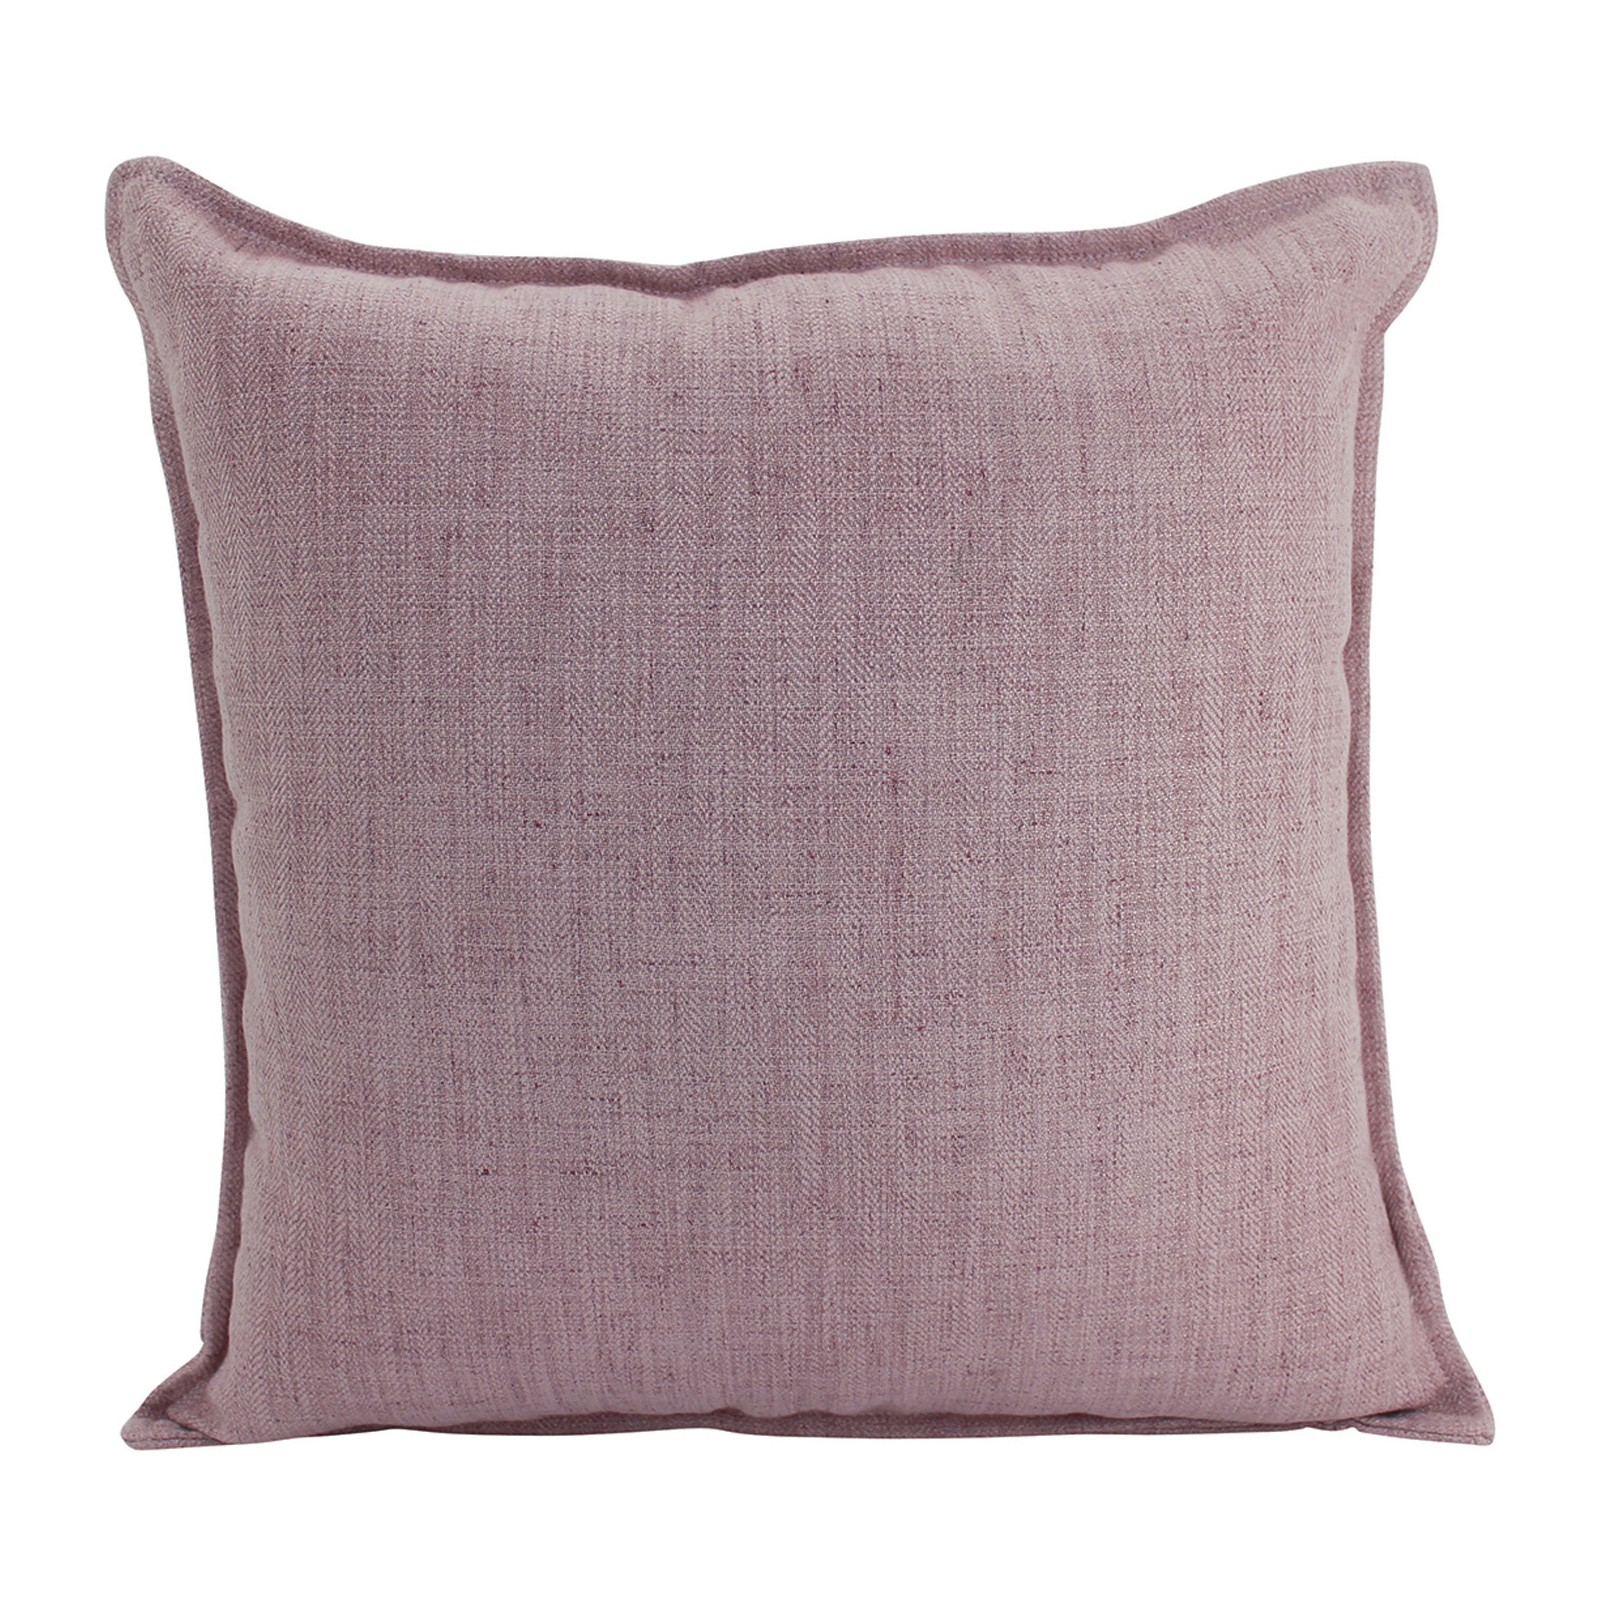 Farra Linen Scatter Cushion, Blush